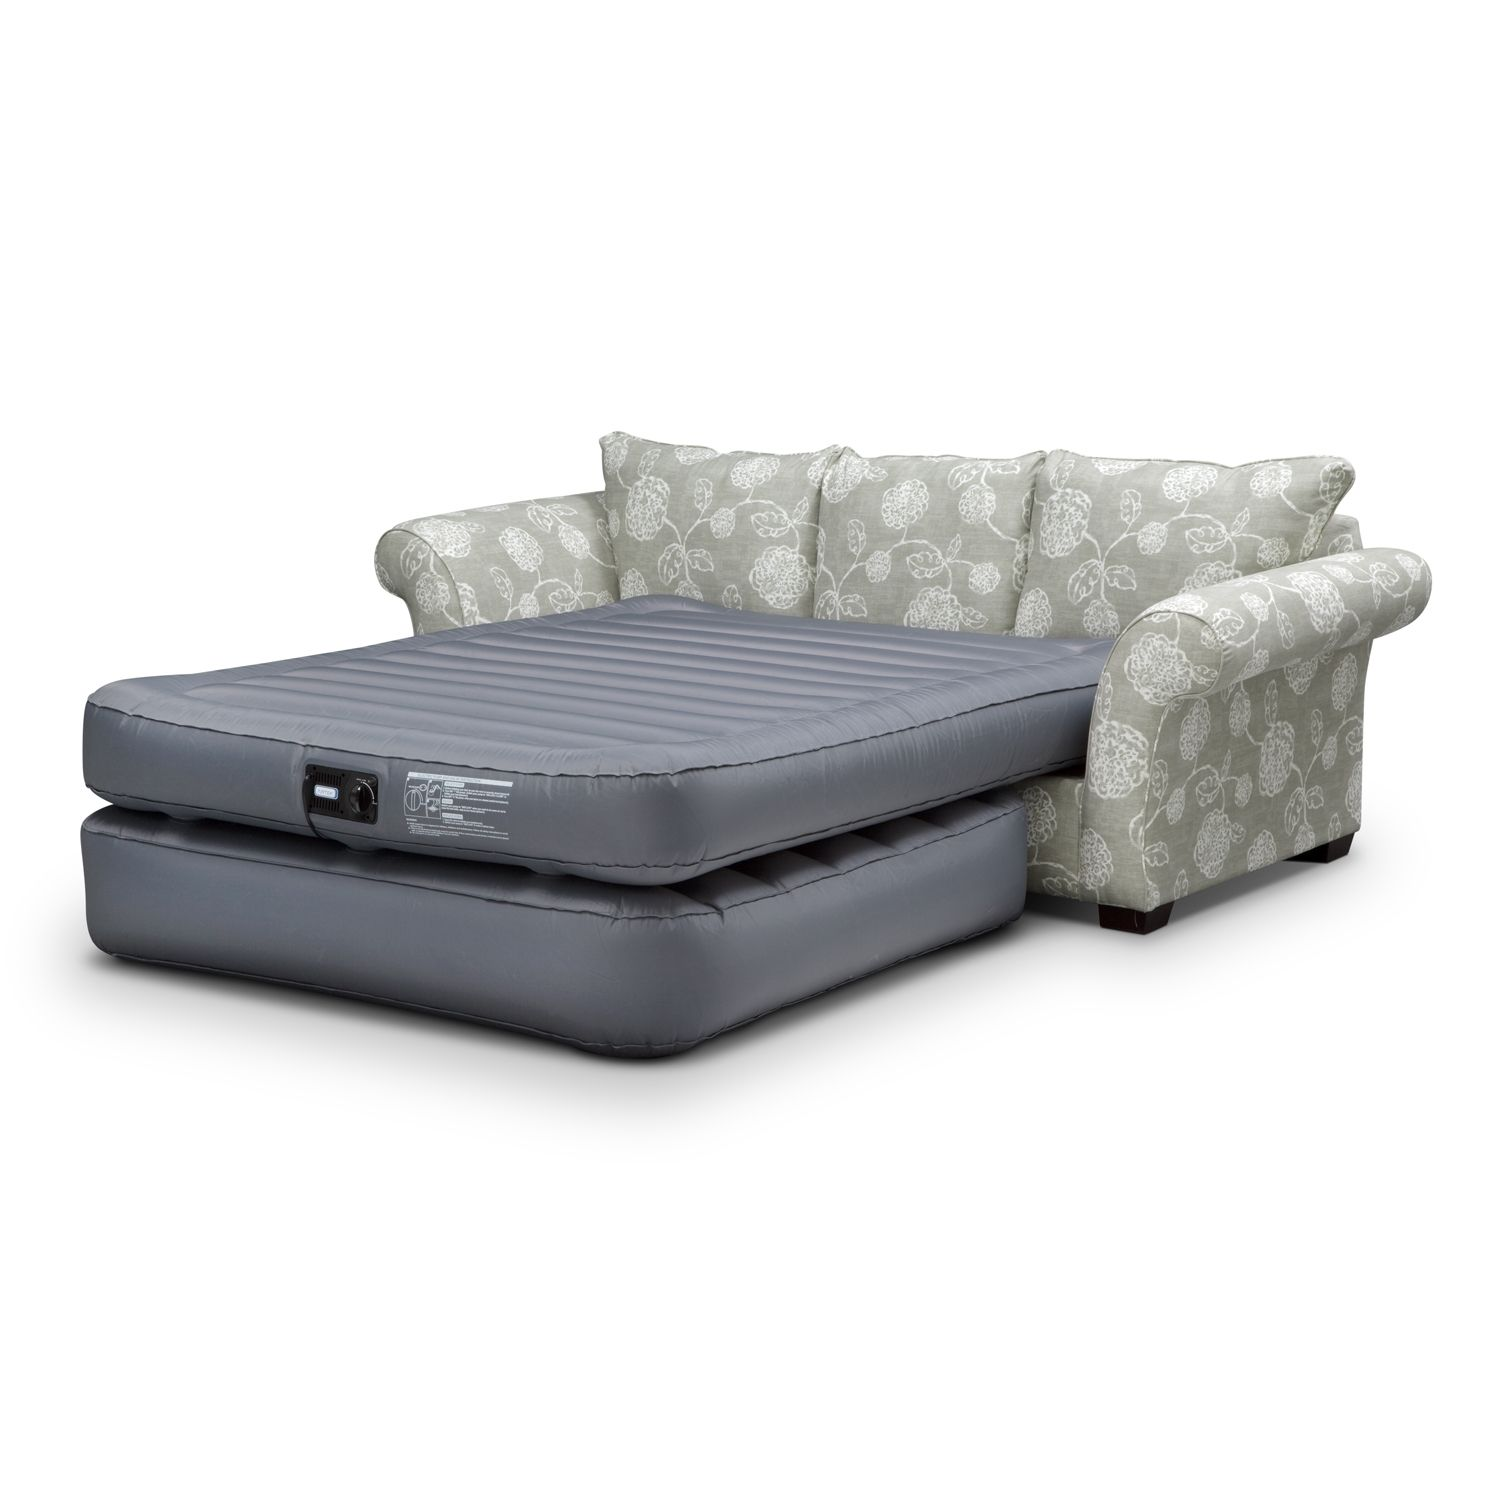 Airest Mattresses And Bedding Air Sofa Bed Value City Furniture